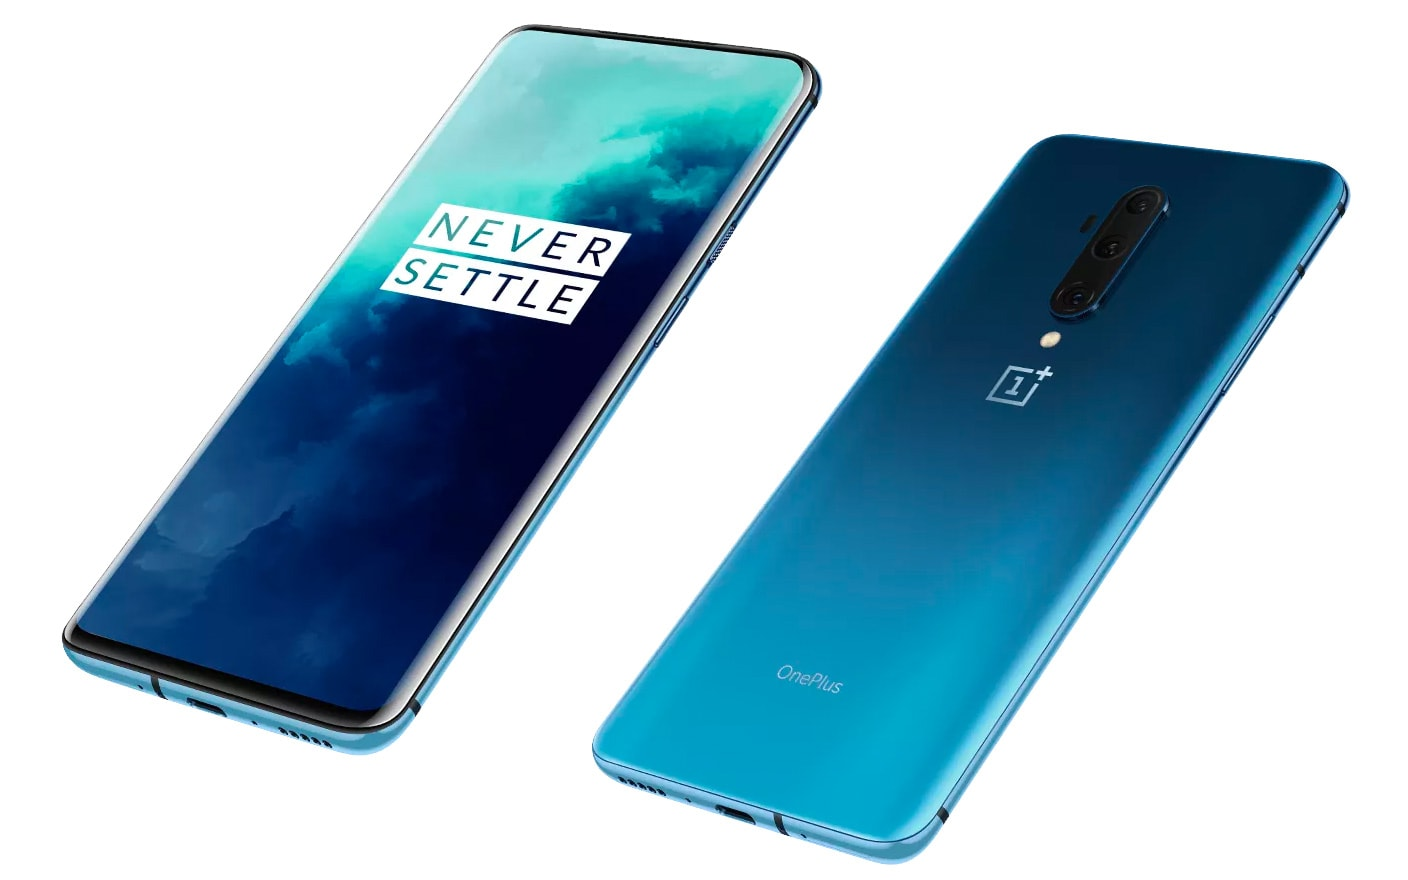 The OnePlus 7T Pro is a speedier take on a familiar design